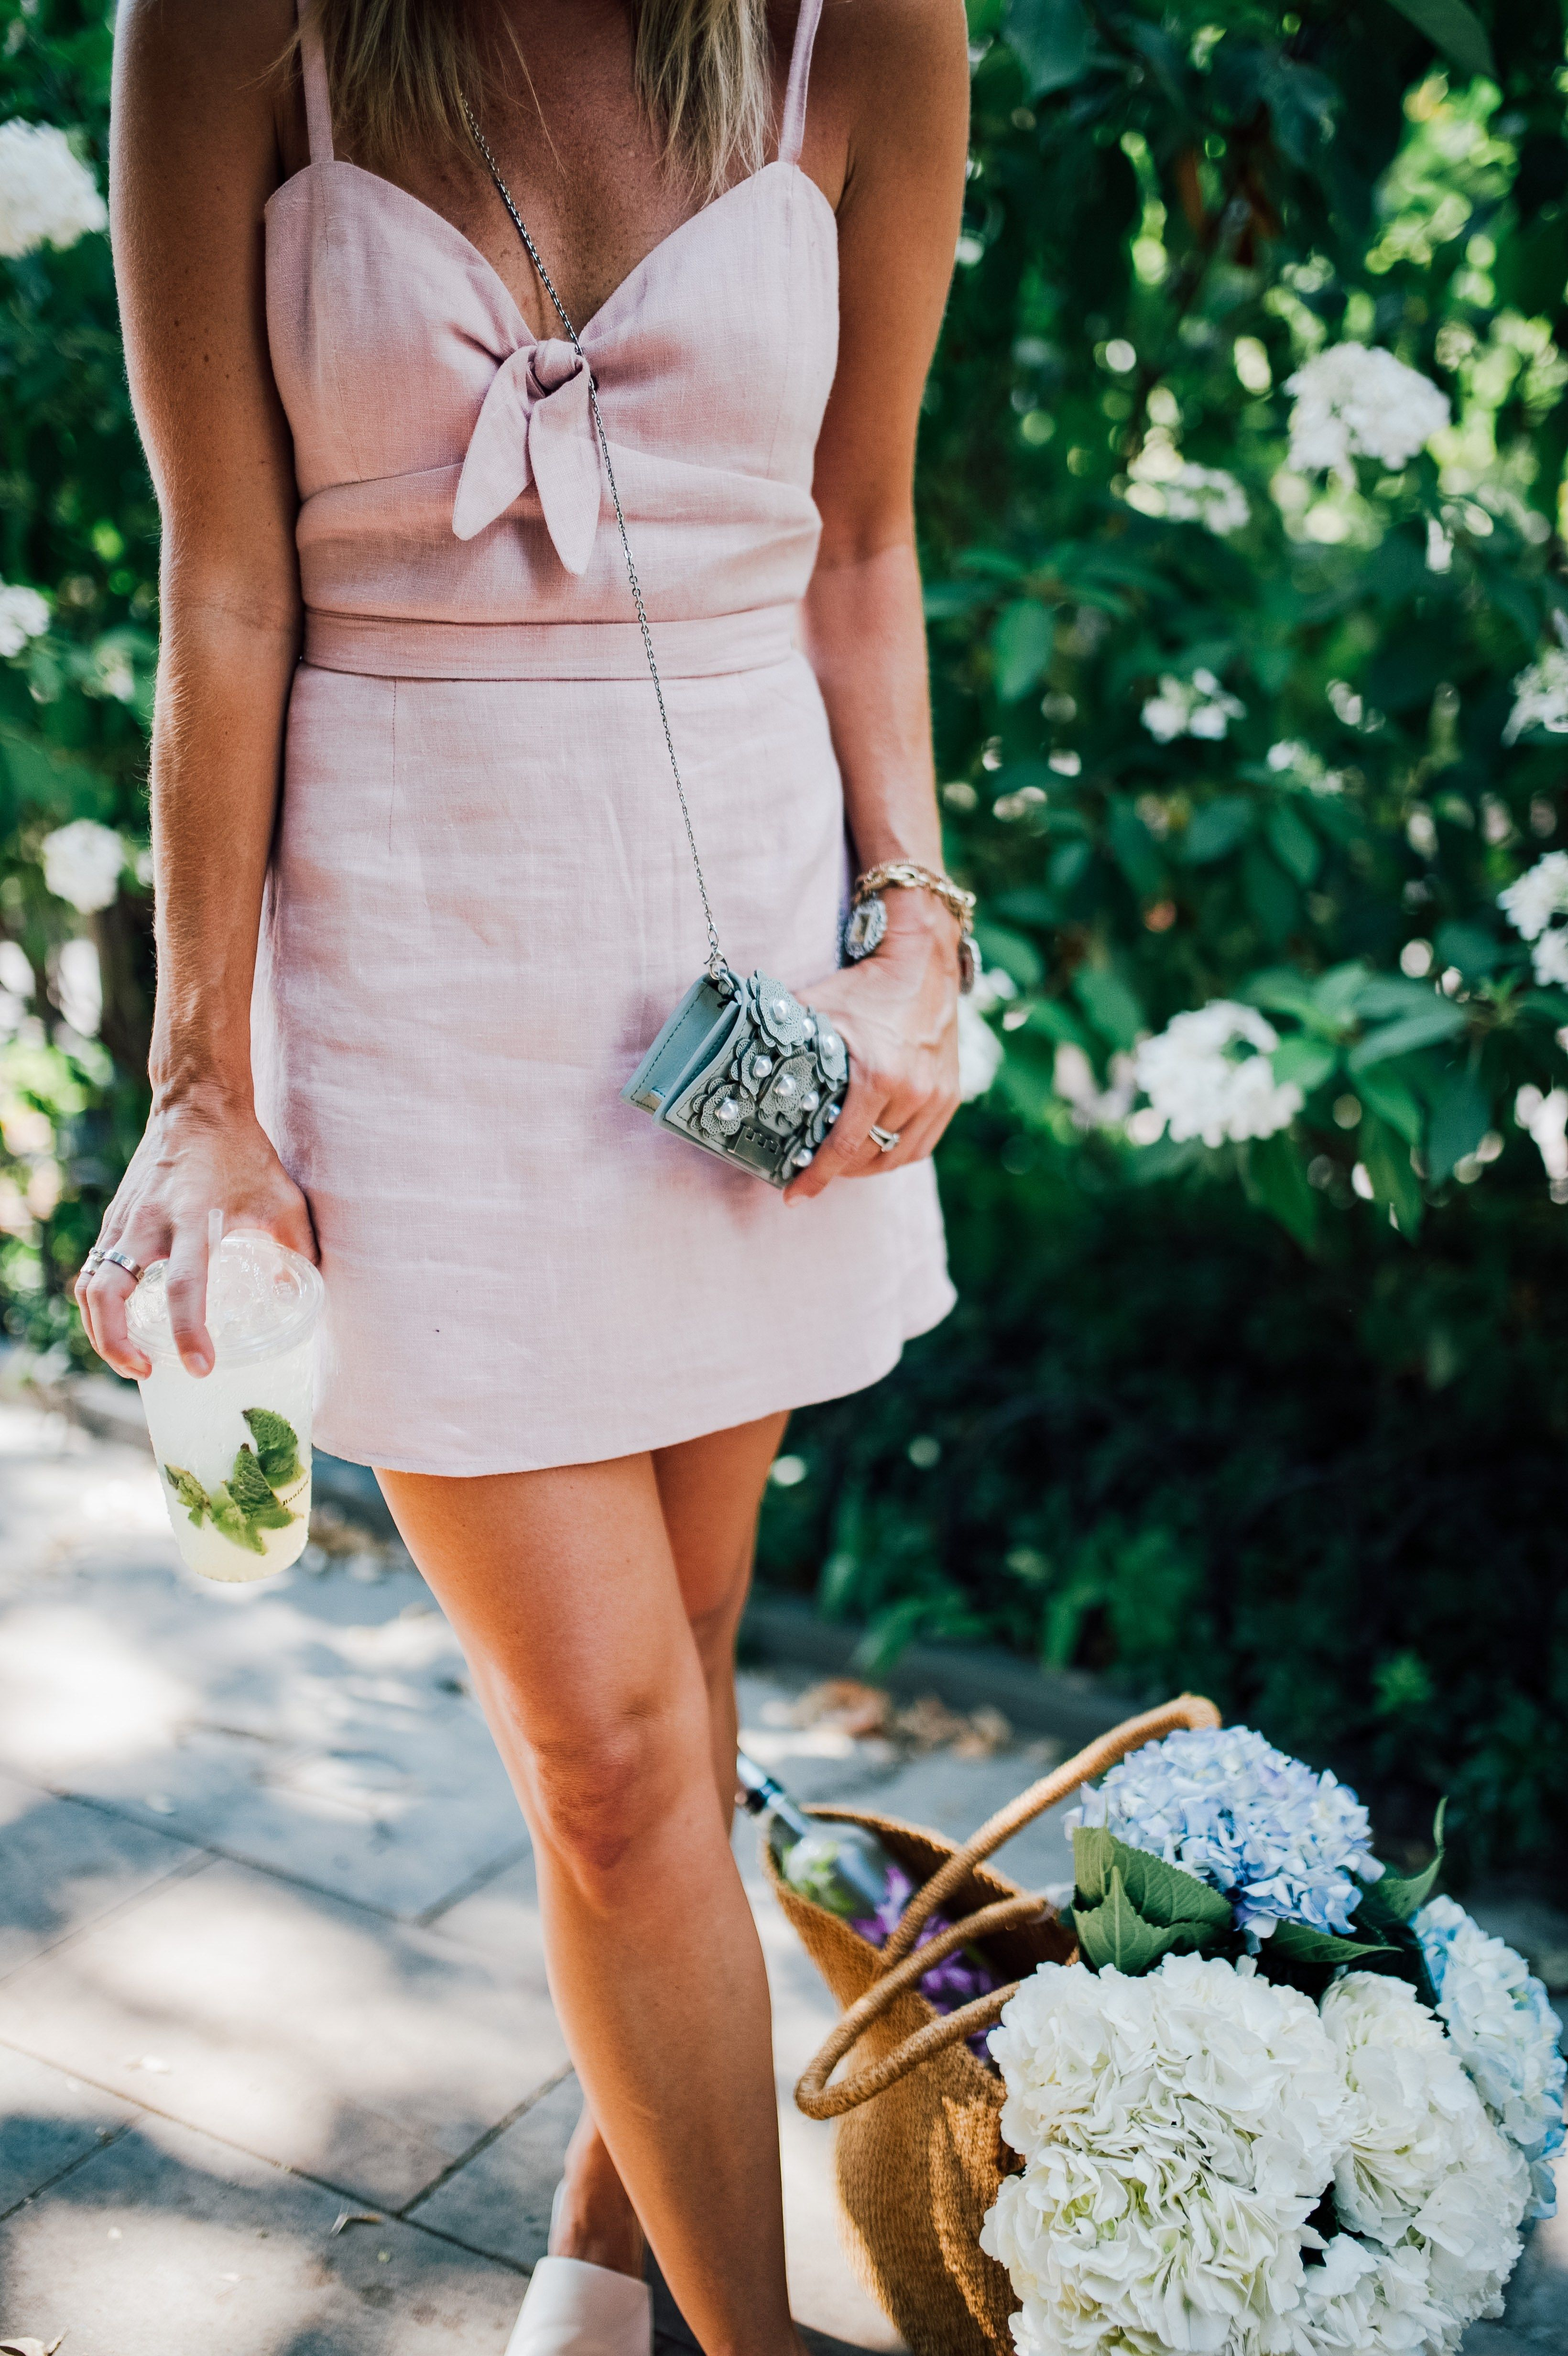 573dbb8e48c Late Summer Picnic and the Perfect Pink Dress